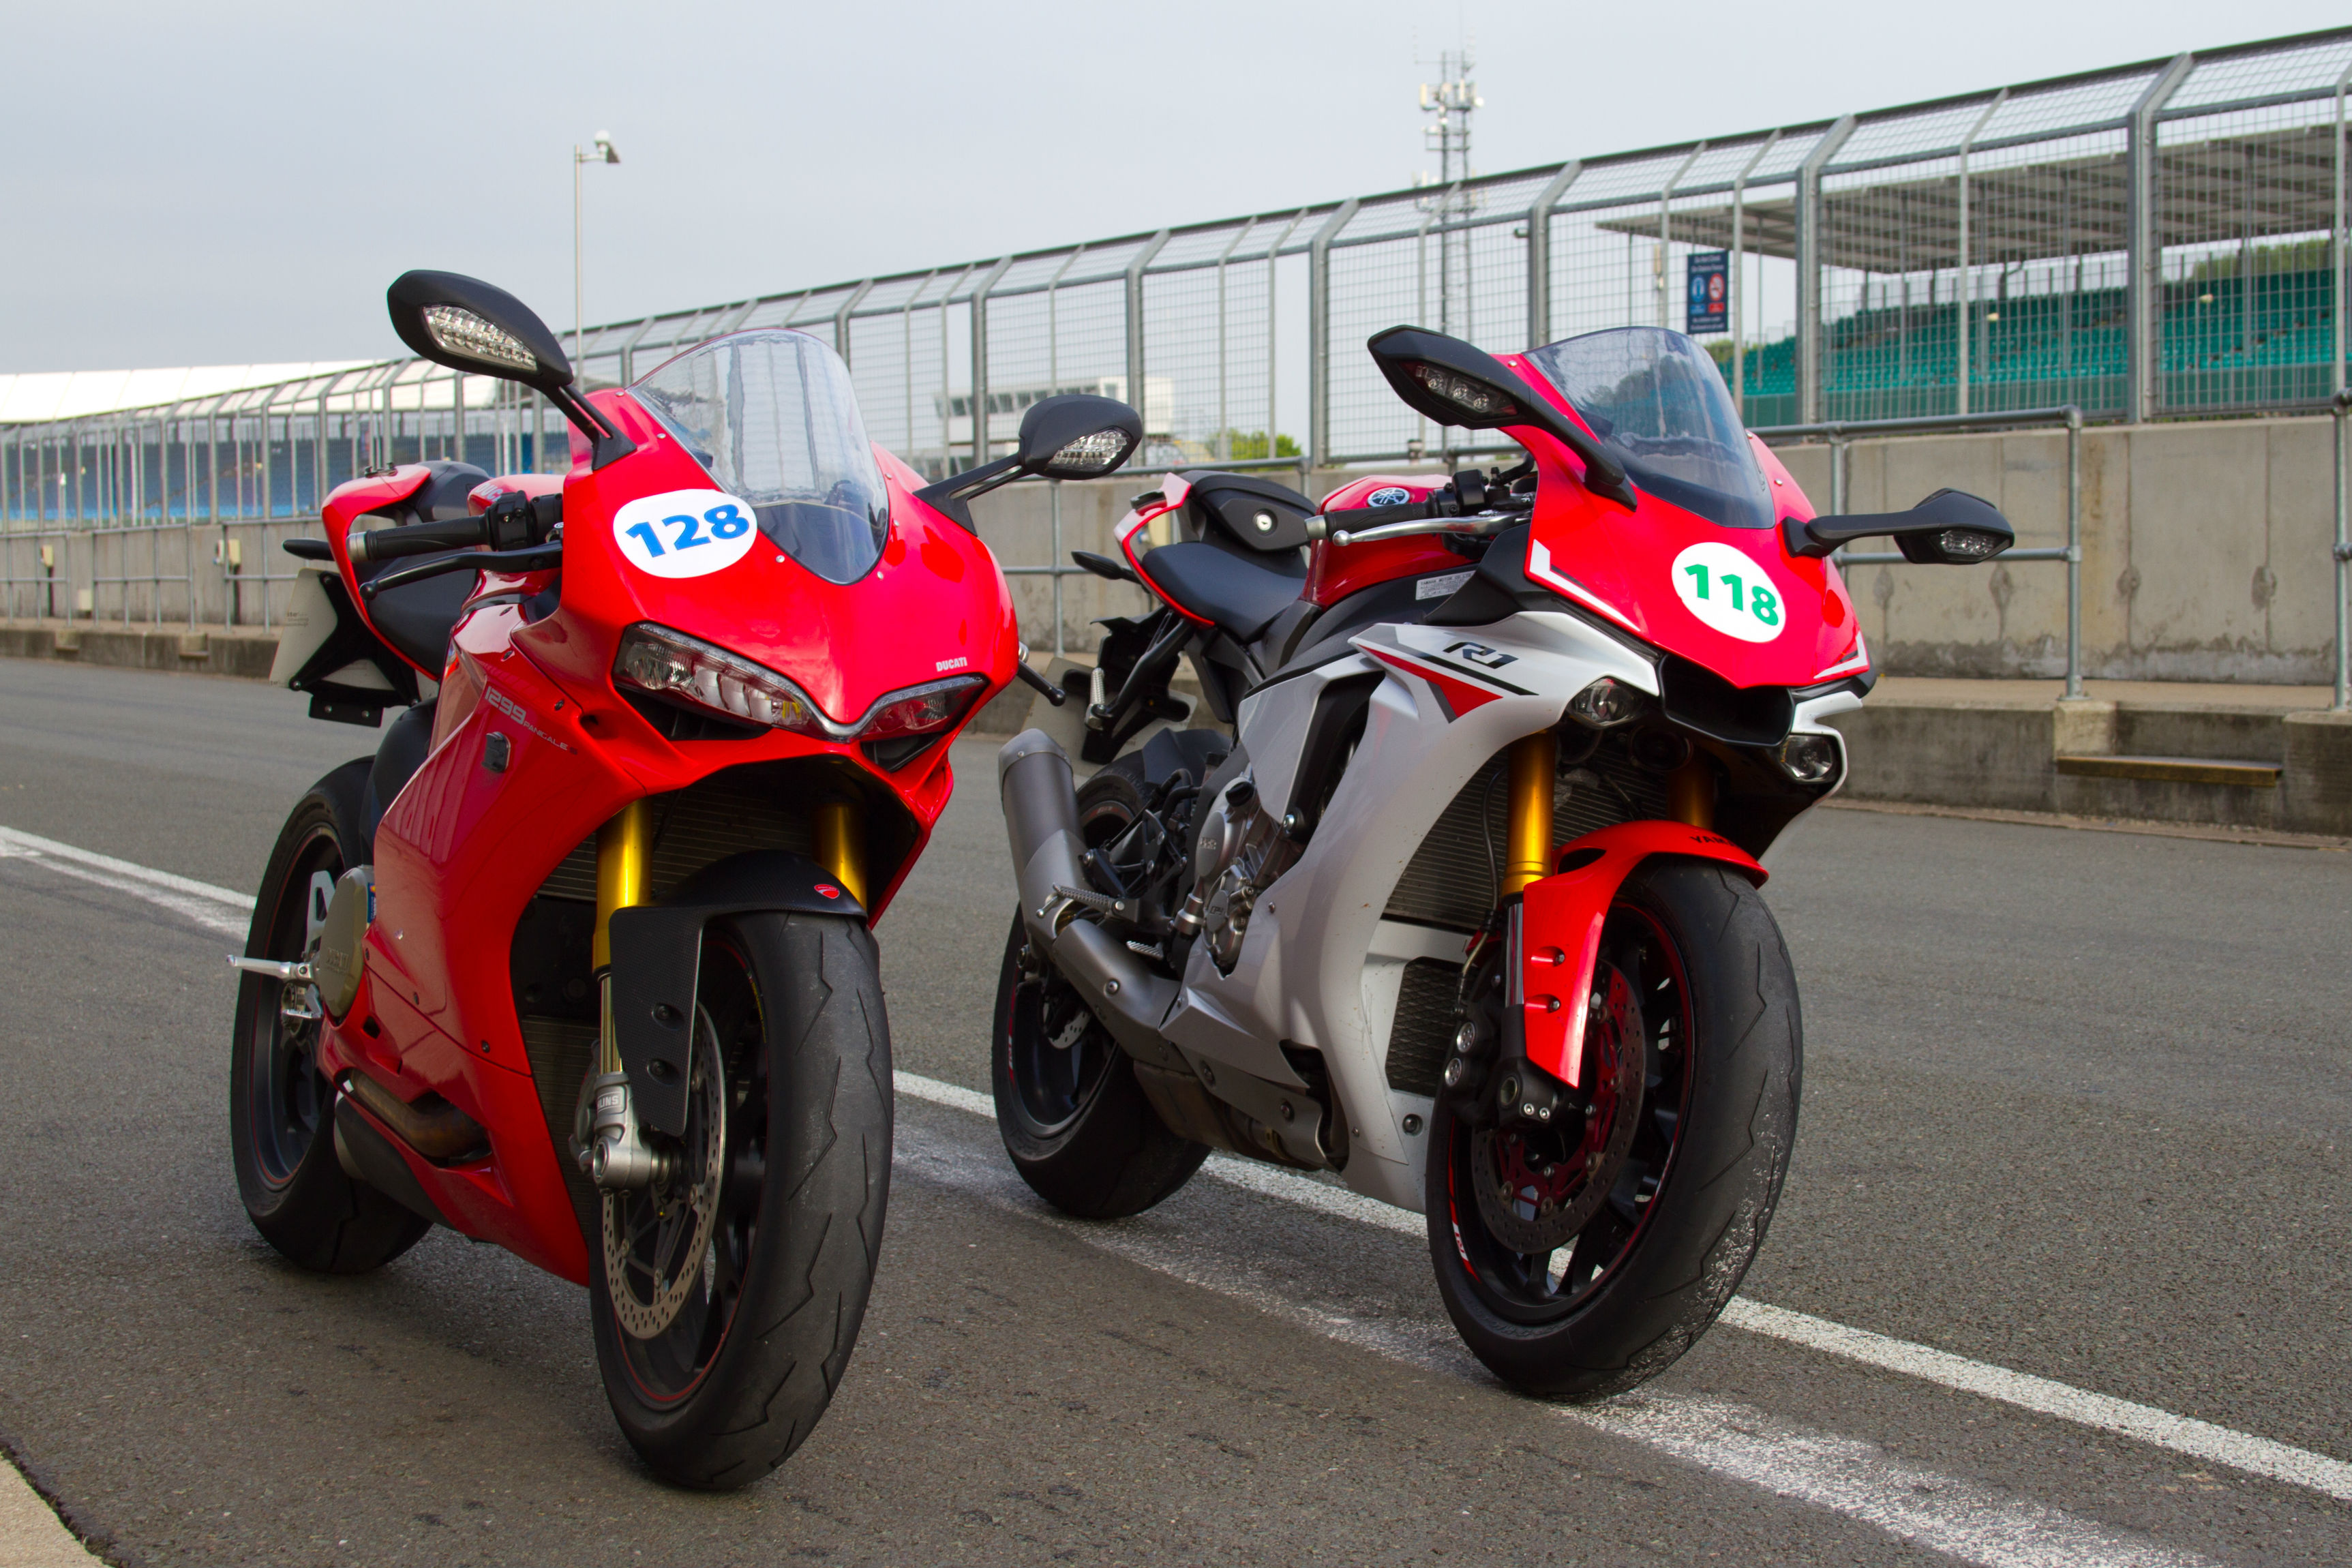 Back-to-back test: Yamaha R1 vs Ducati 1... | Visordown